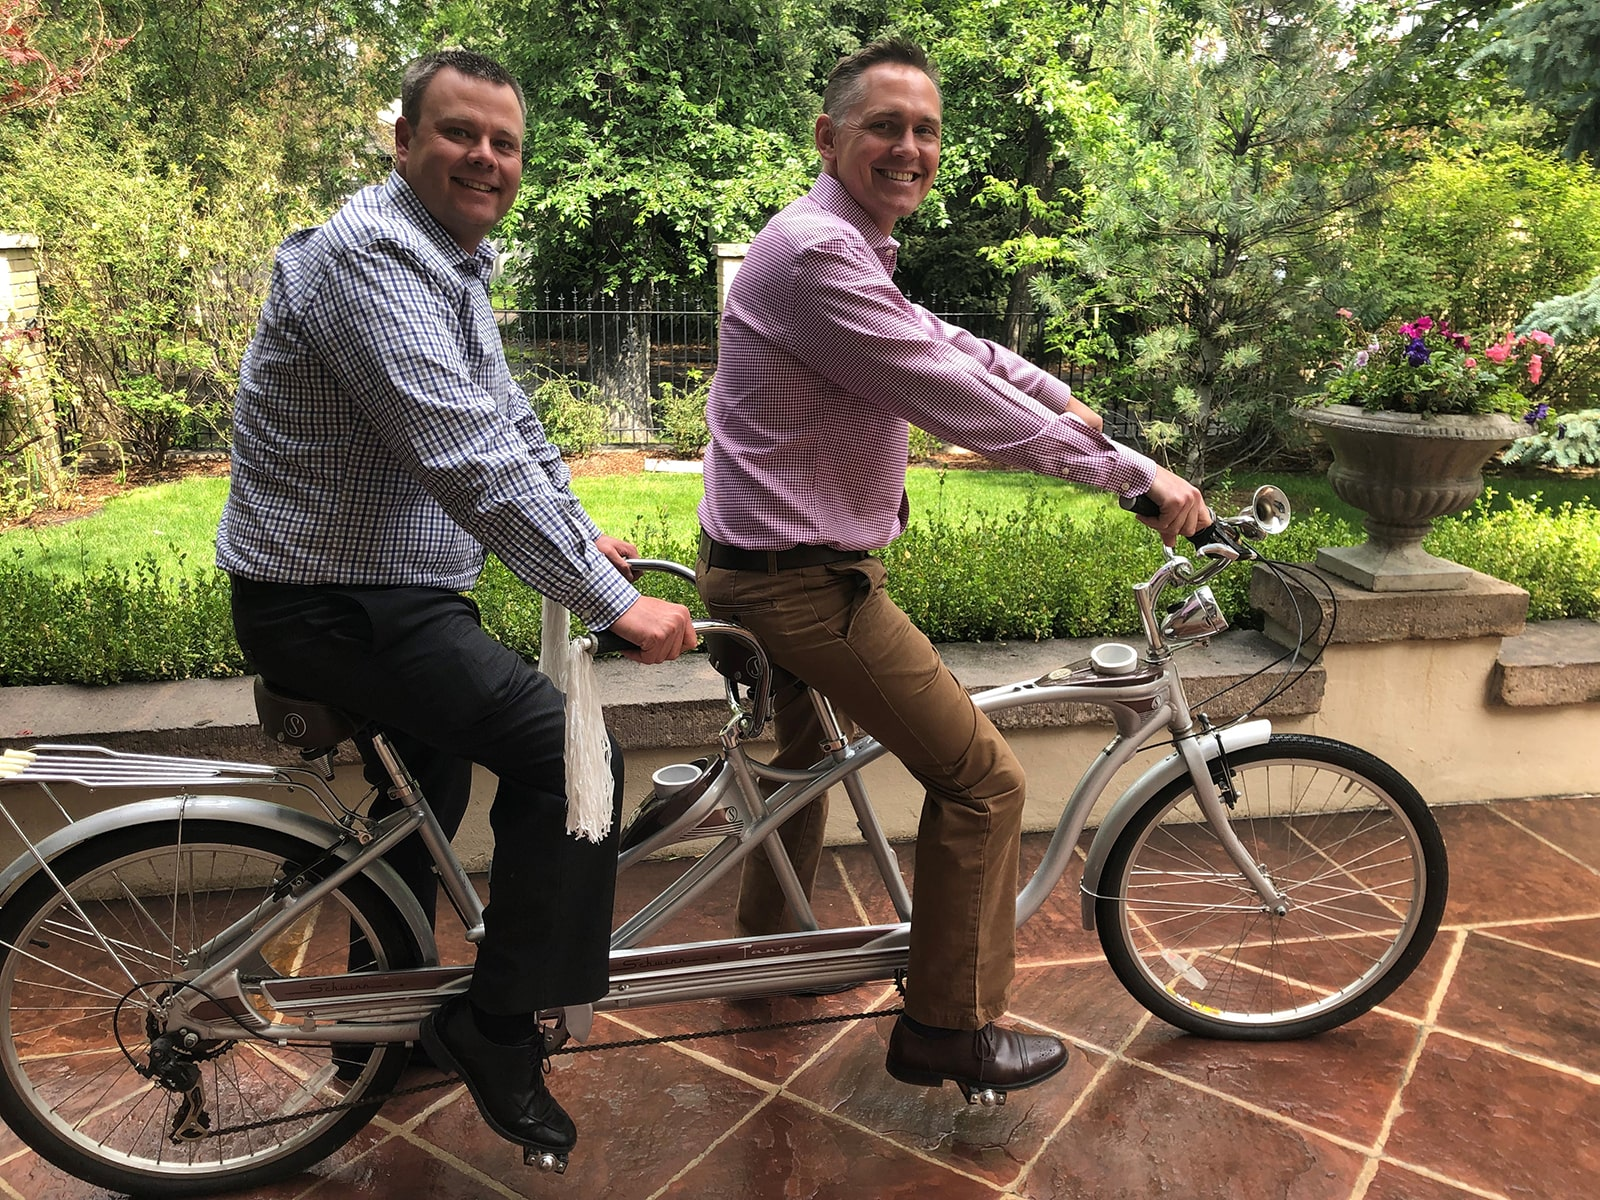 Ryan and Michael Riding a Tandem Bike